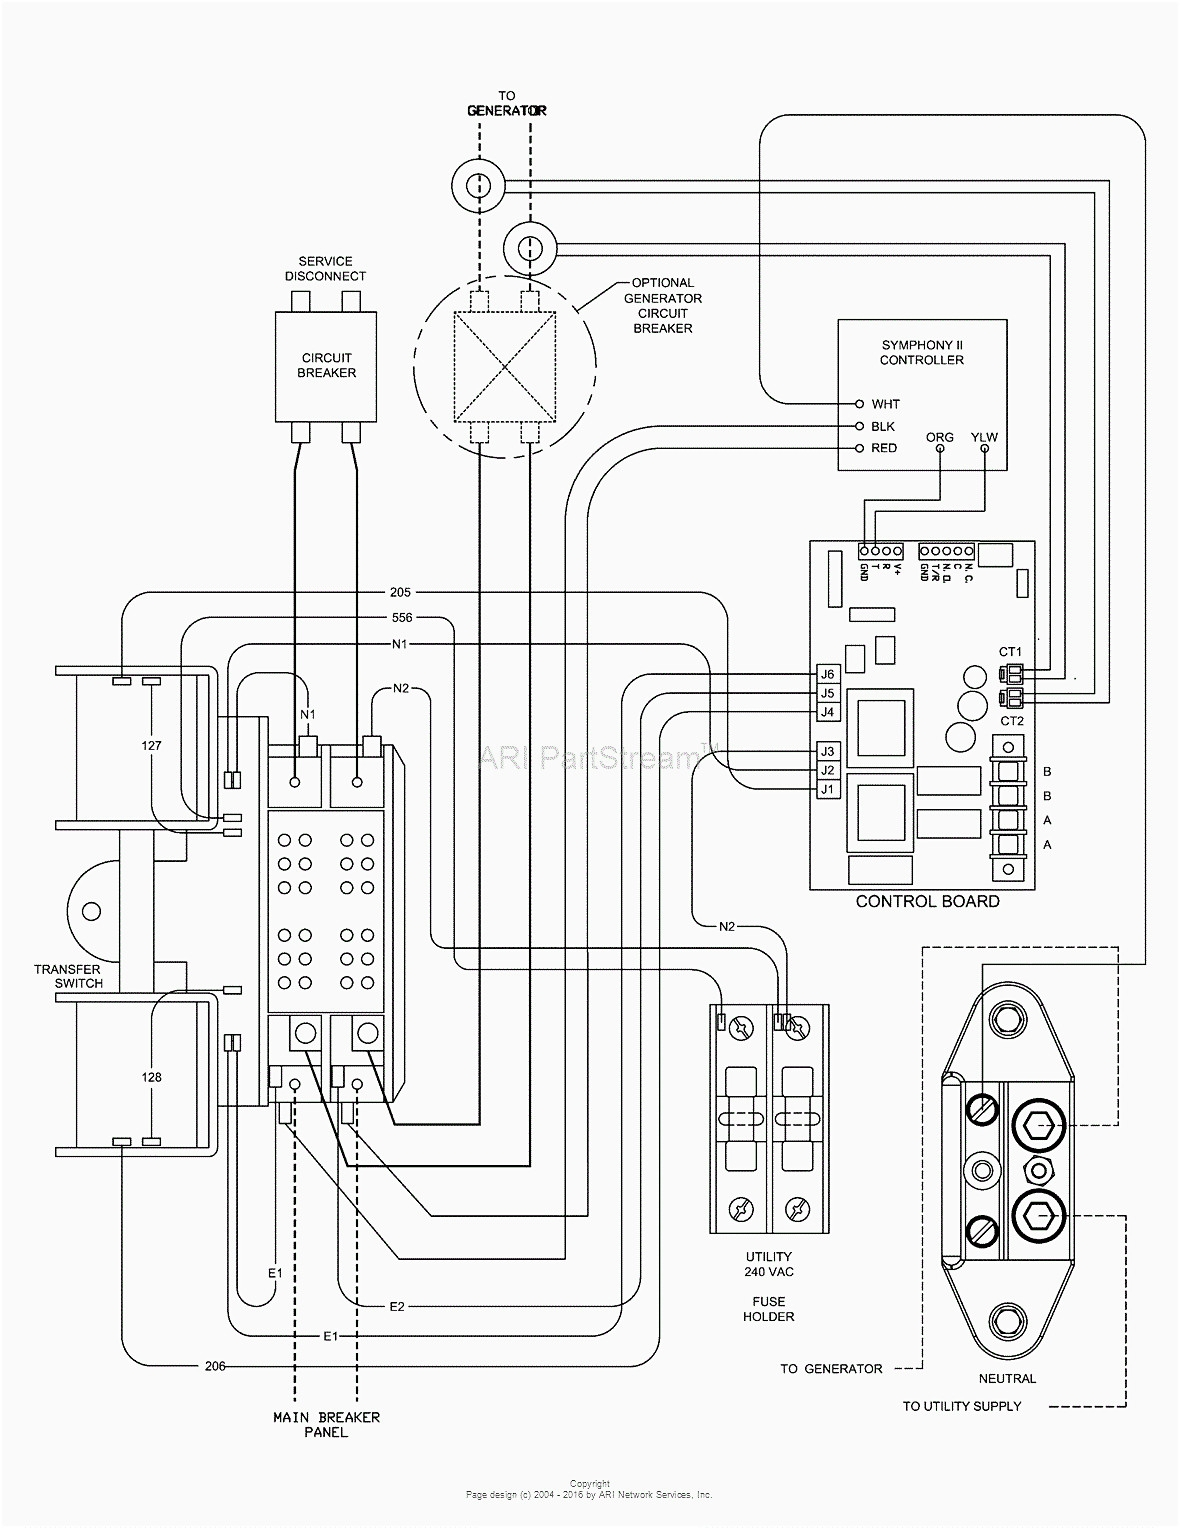 Generac 100 Amp Automatic Transfer Switch Wiring Diagram